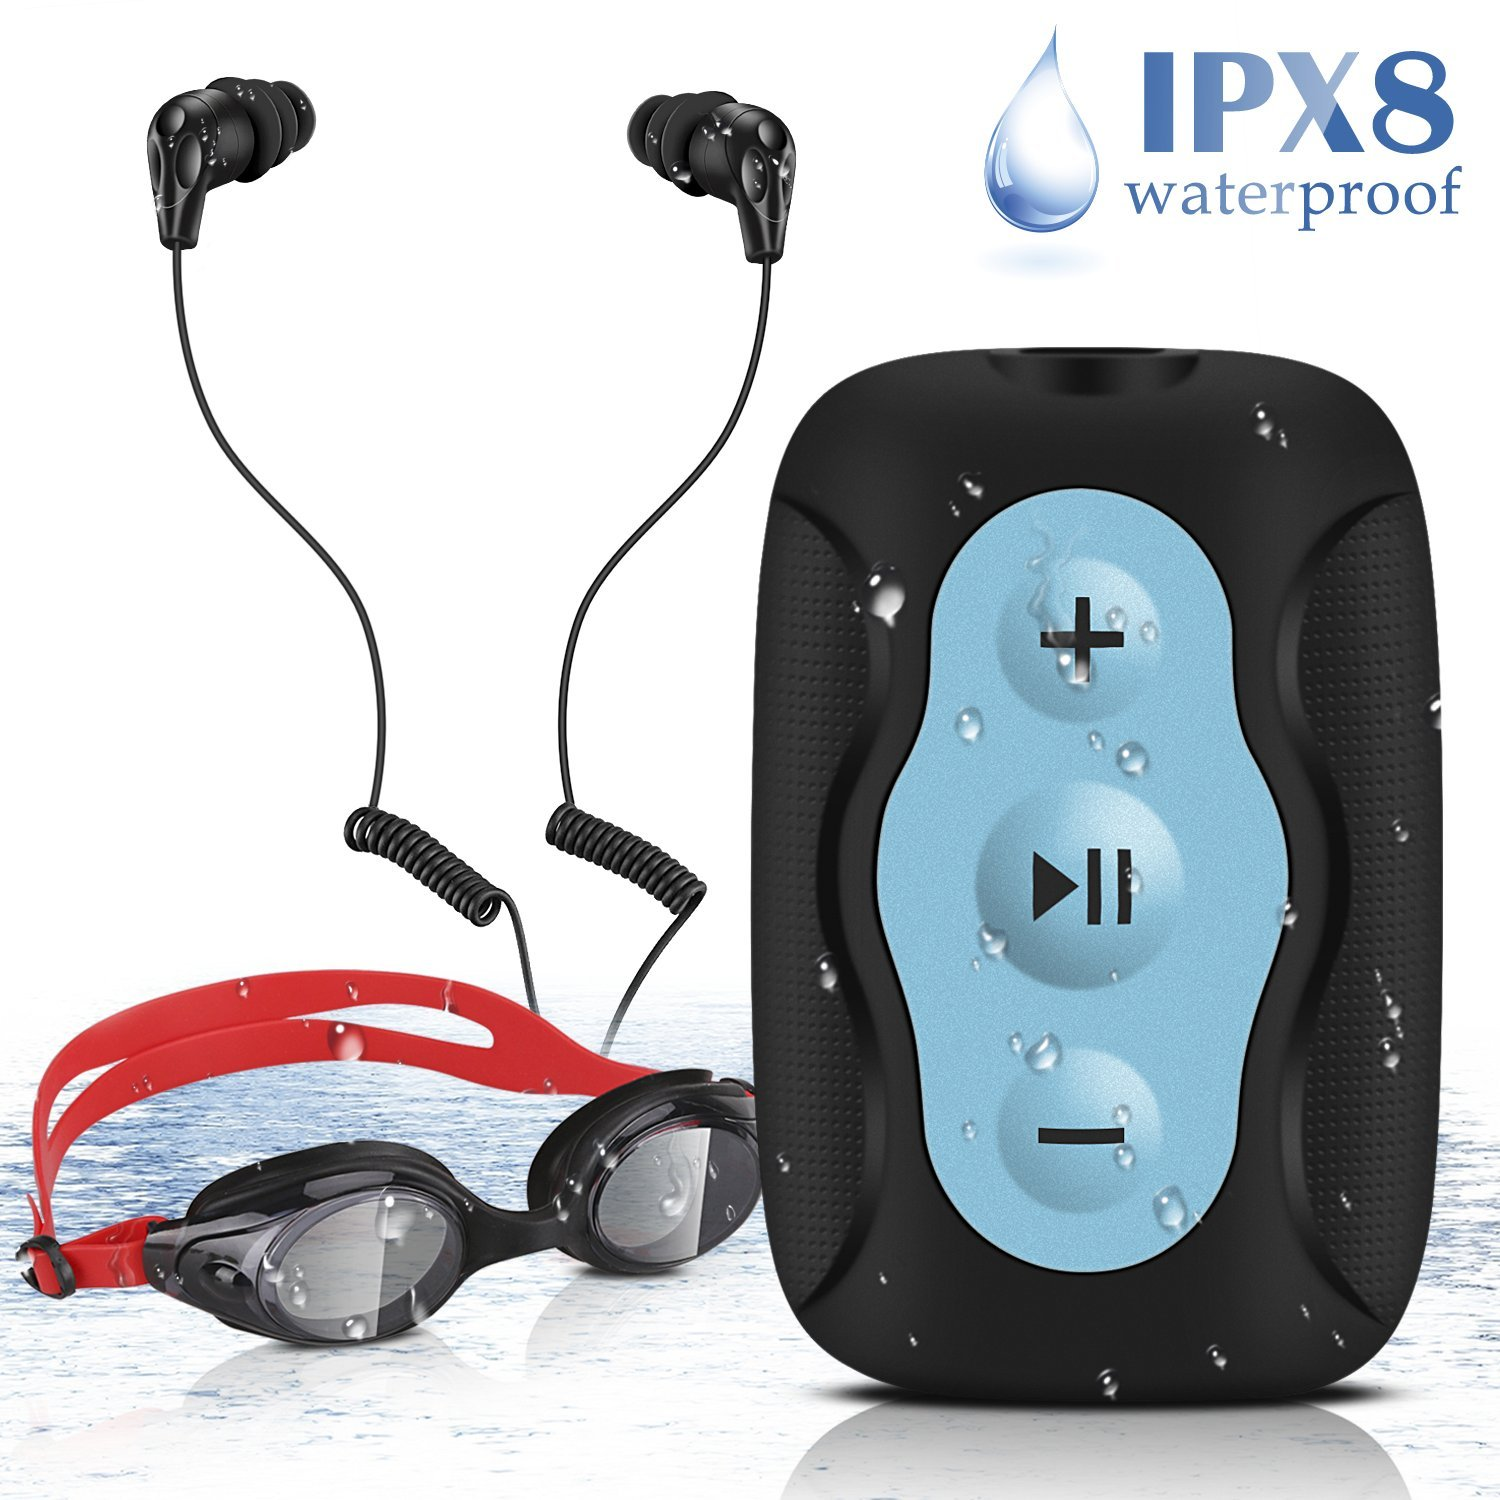 a9dcf9782f61 AGPTEK S33B 8GB IPX8 Waterproof Clip MP3 Player with IPX8 Waterproof  Earphones Swimming Goggles for Swimming